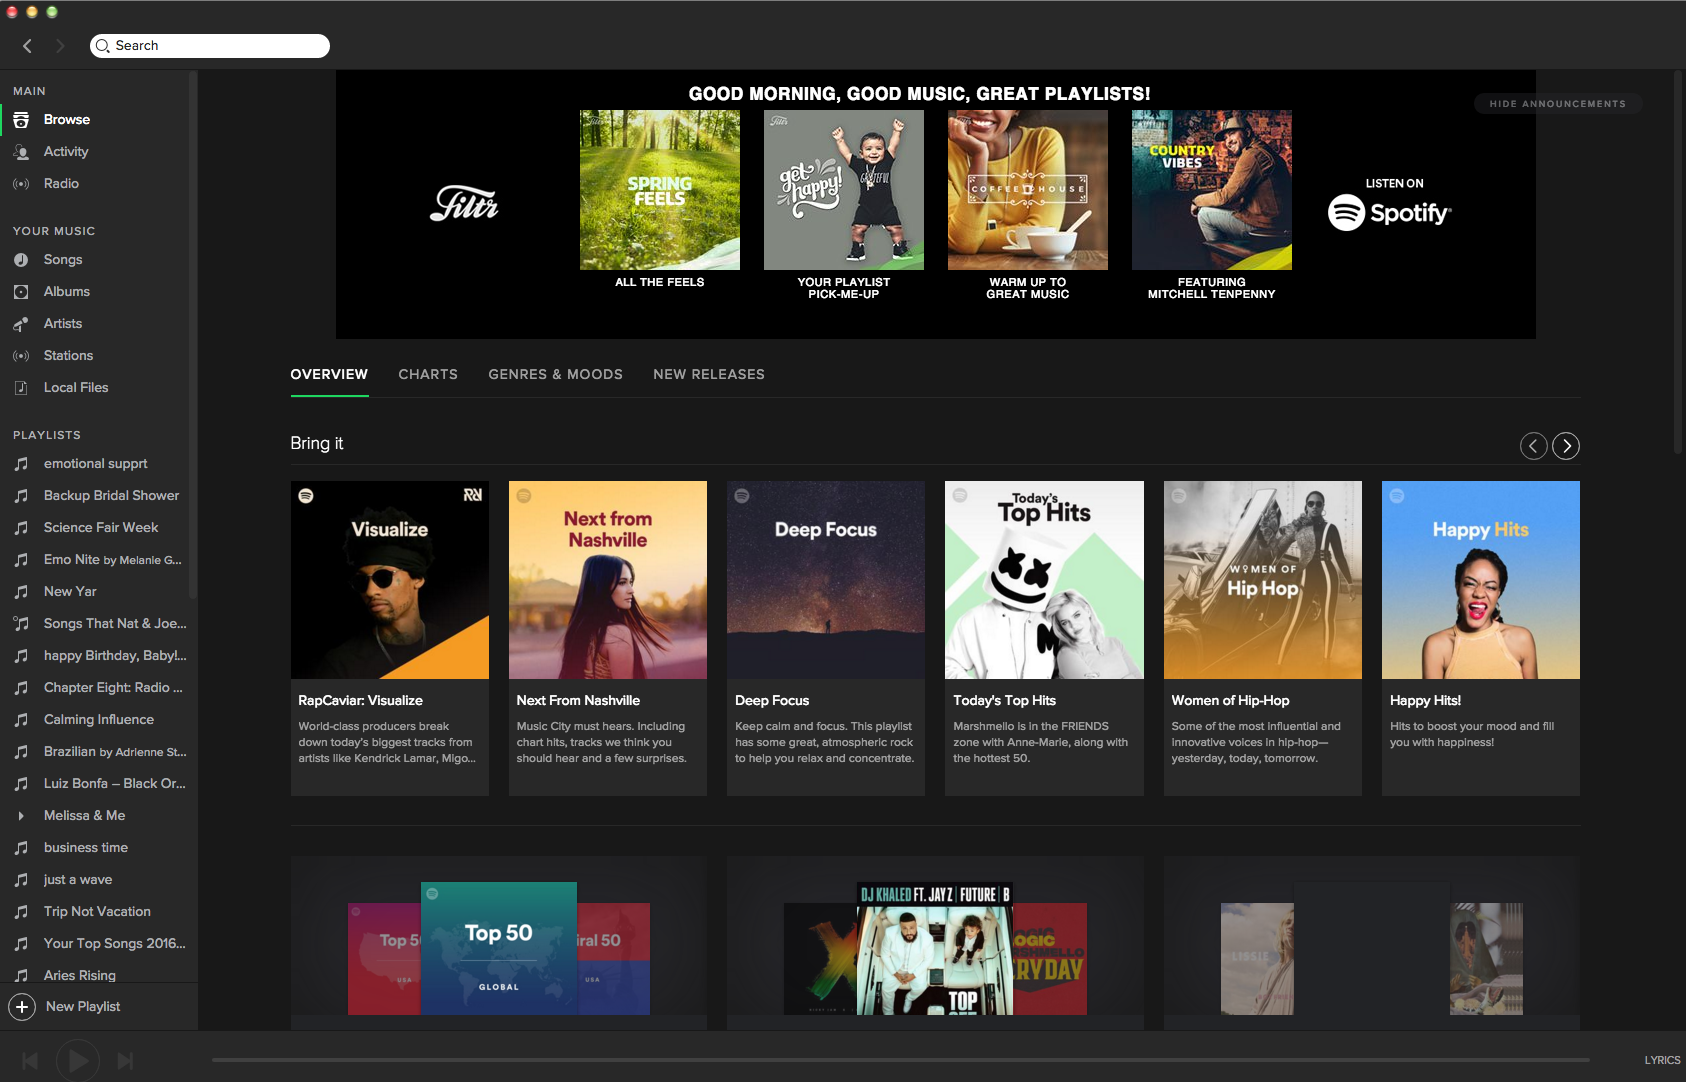 How To Change Your Playlist Cover on Spotify (With Pictures